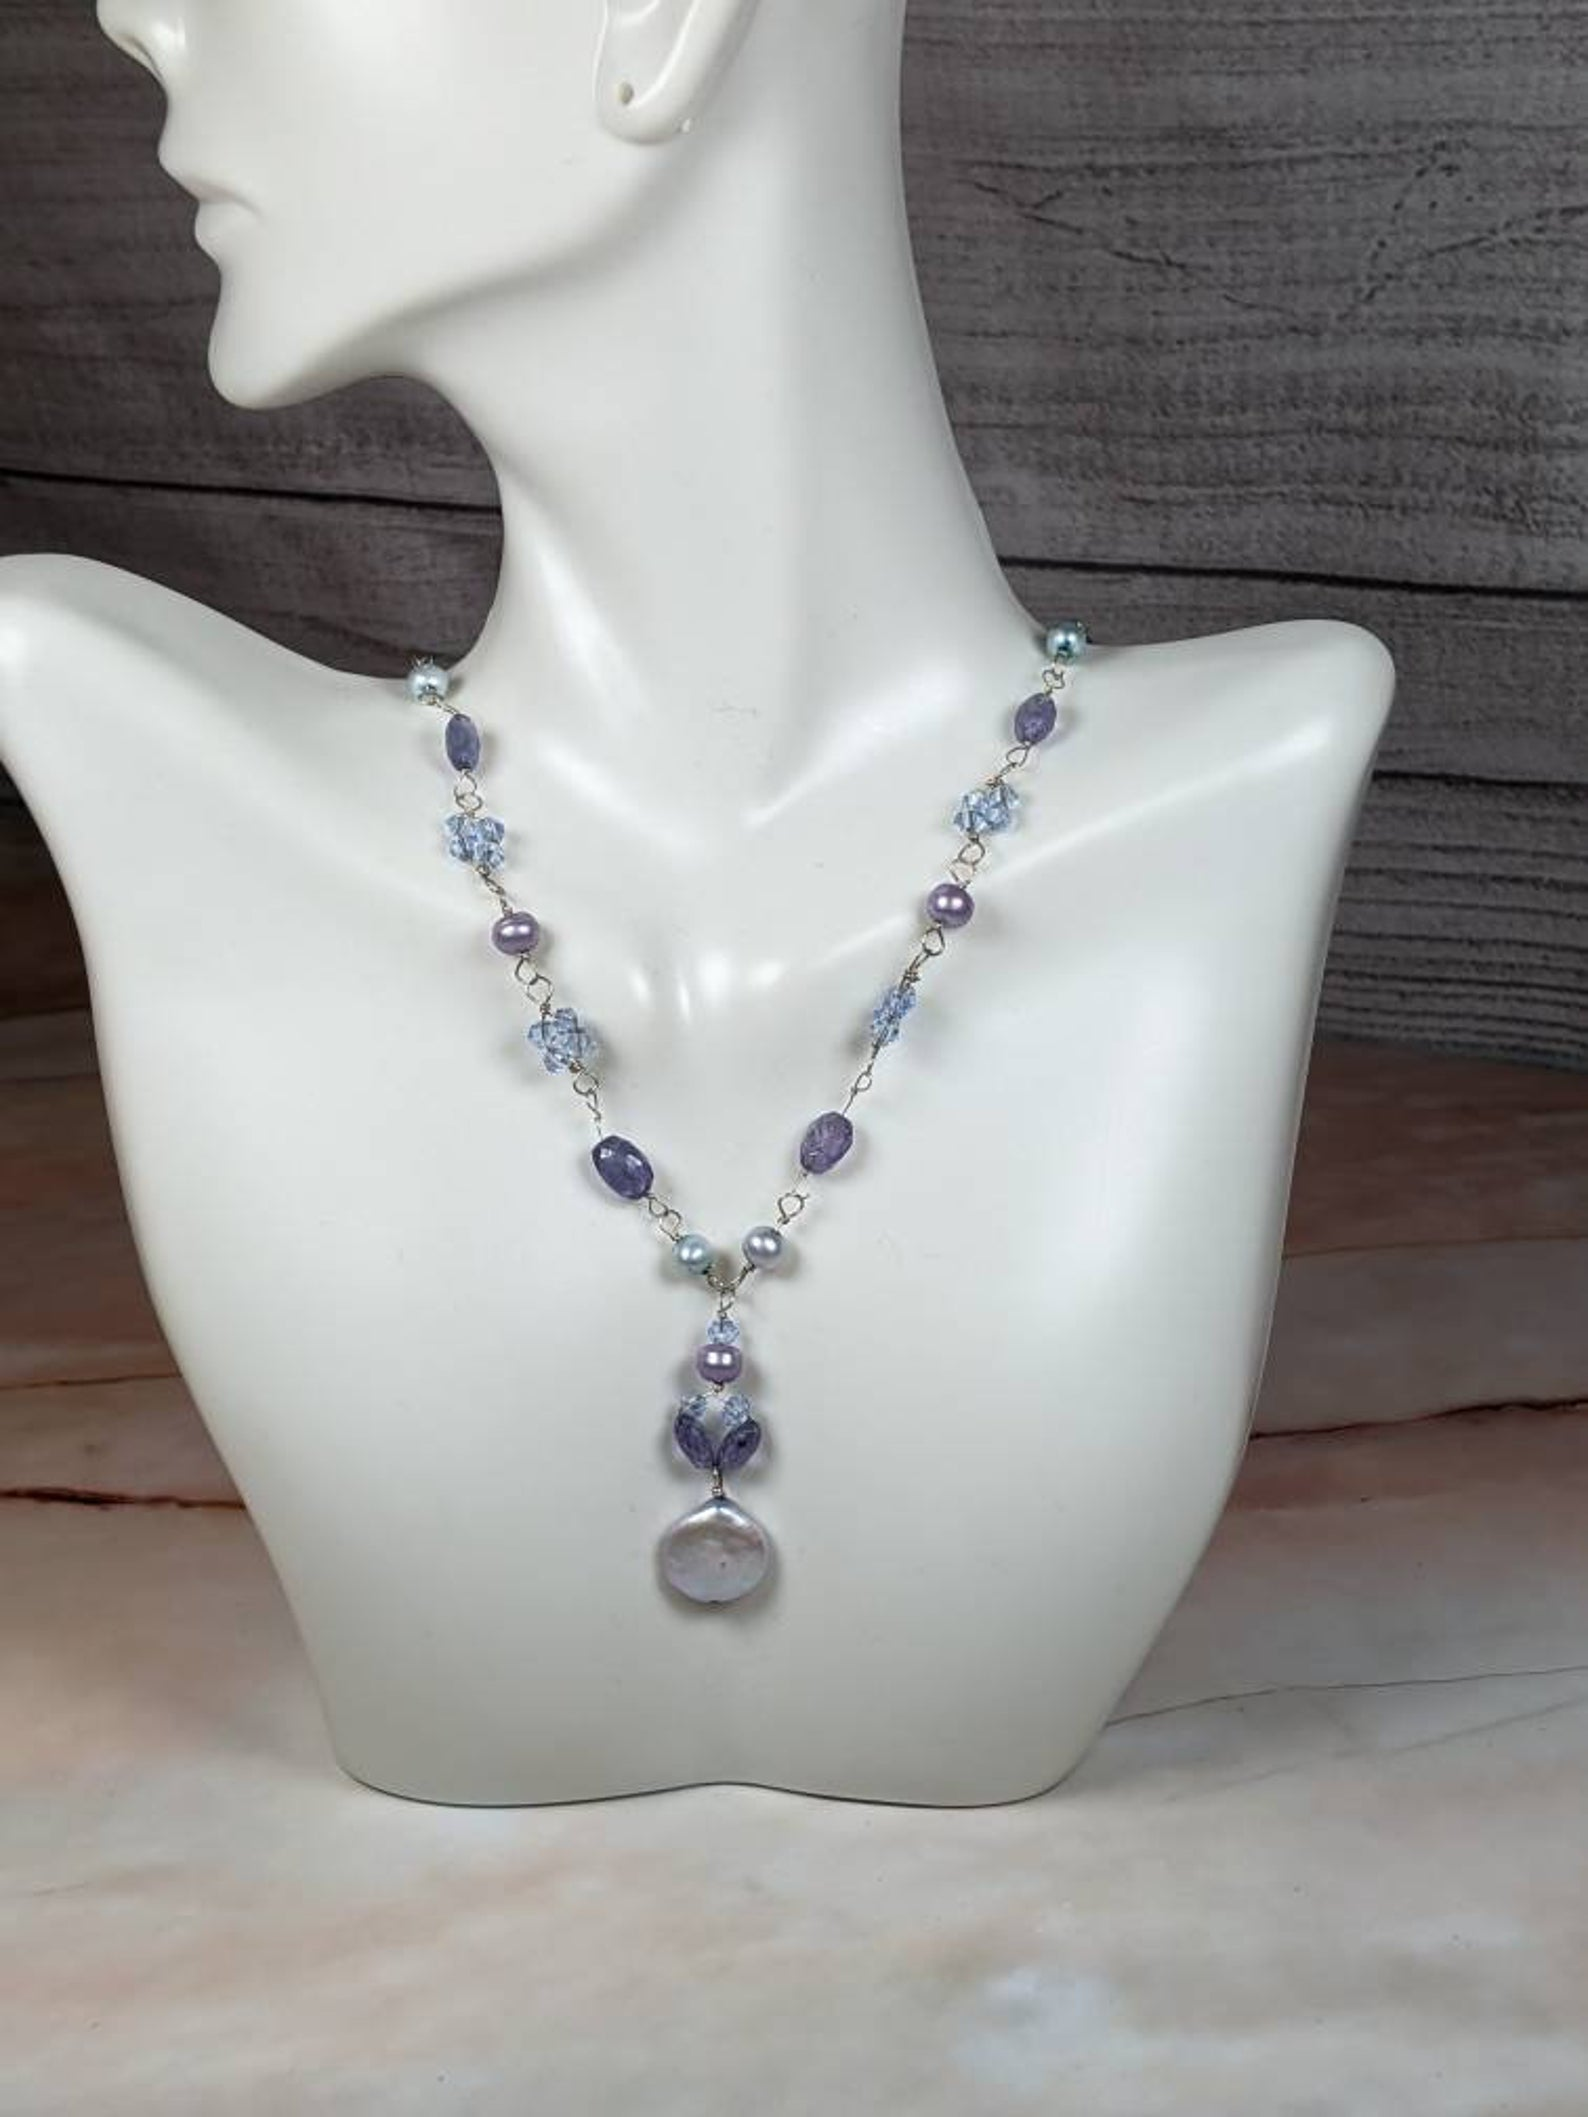 The deep shades of blue and purple bring the necklace a cool ambience. There are jewels and beads assorted in a symmetrical pattern between wire.